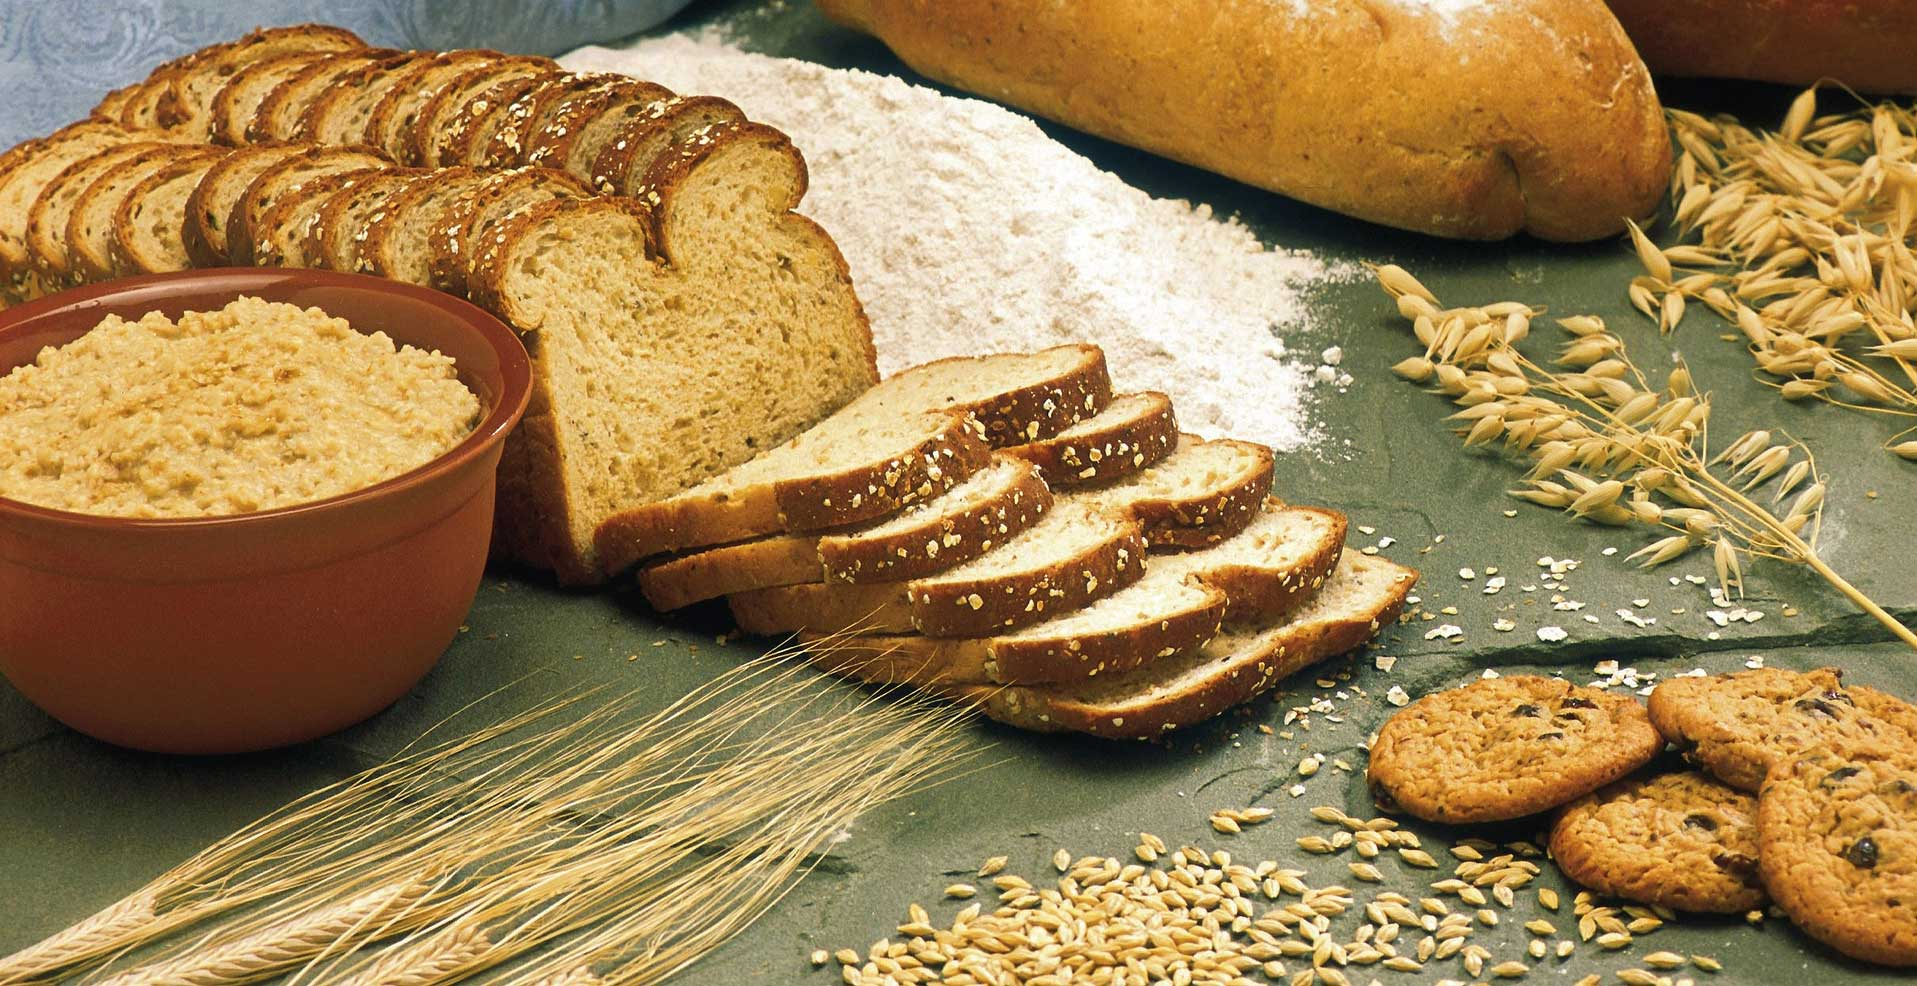 How gluten in the bread affects your health gut and digestion